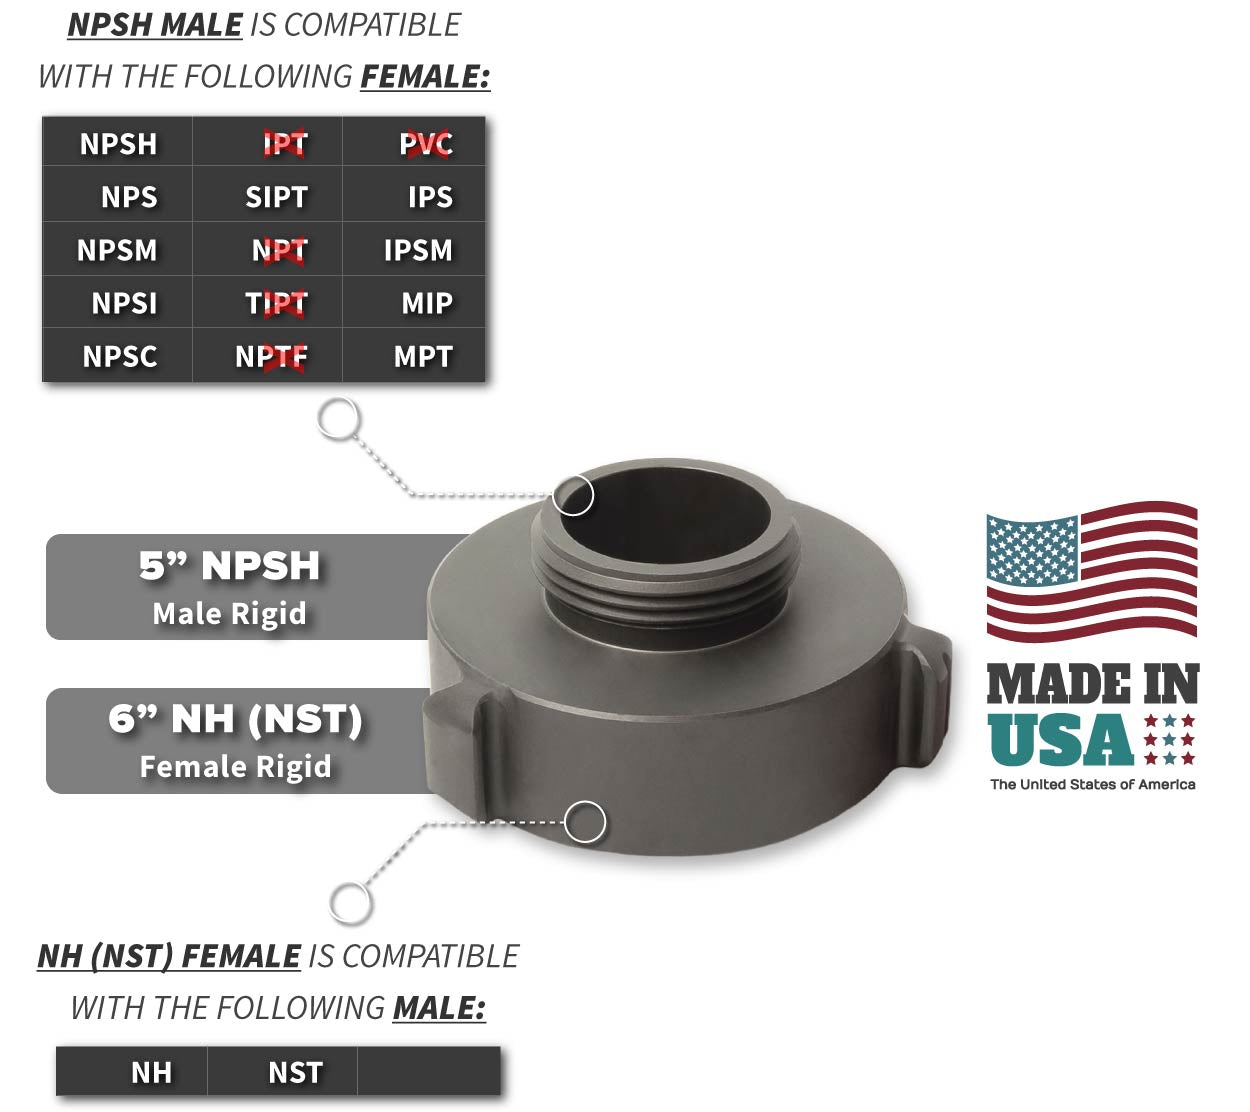 6 Inch NH-NST Female x 5 Inch NPSH Male Compatibility Thread Chart